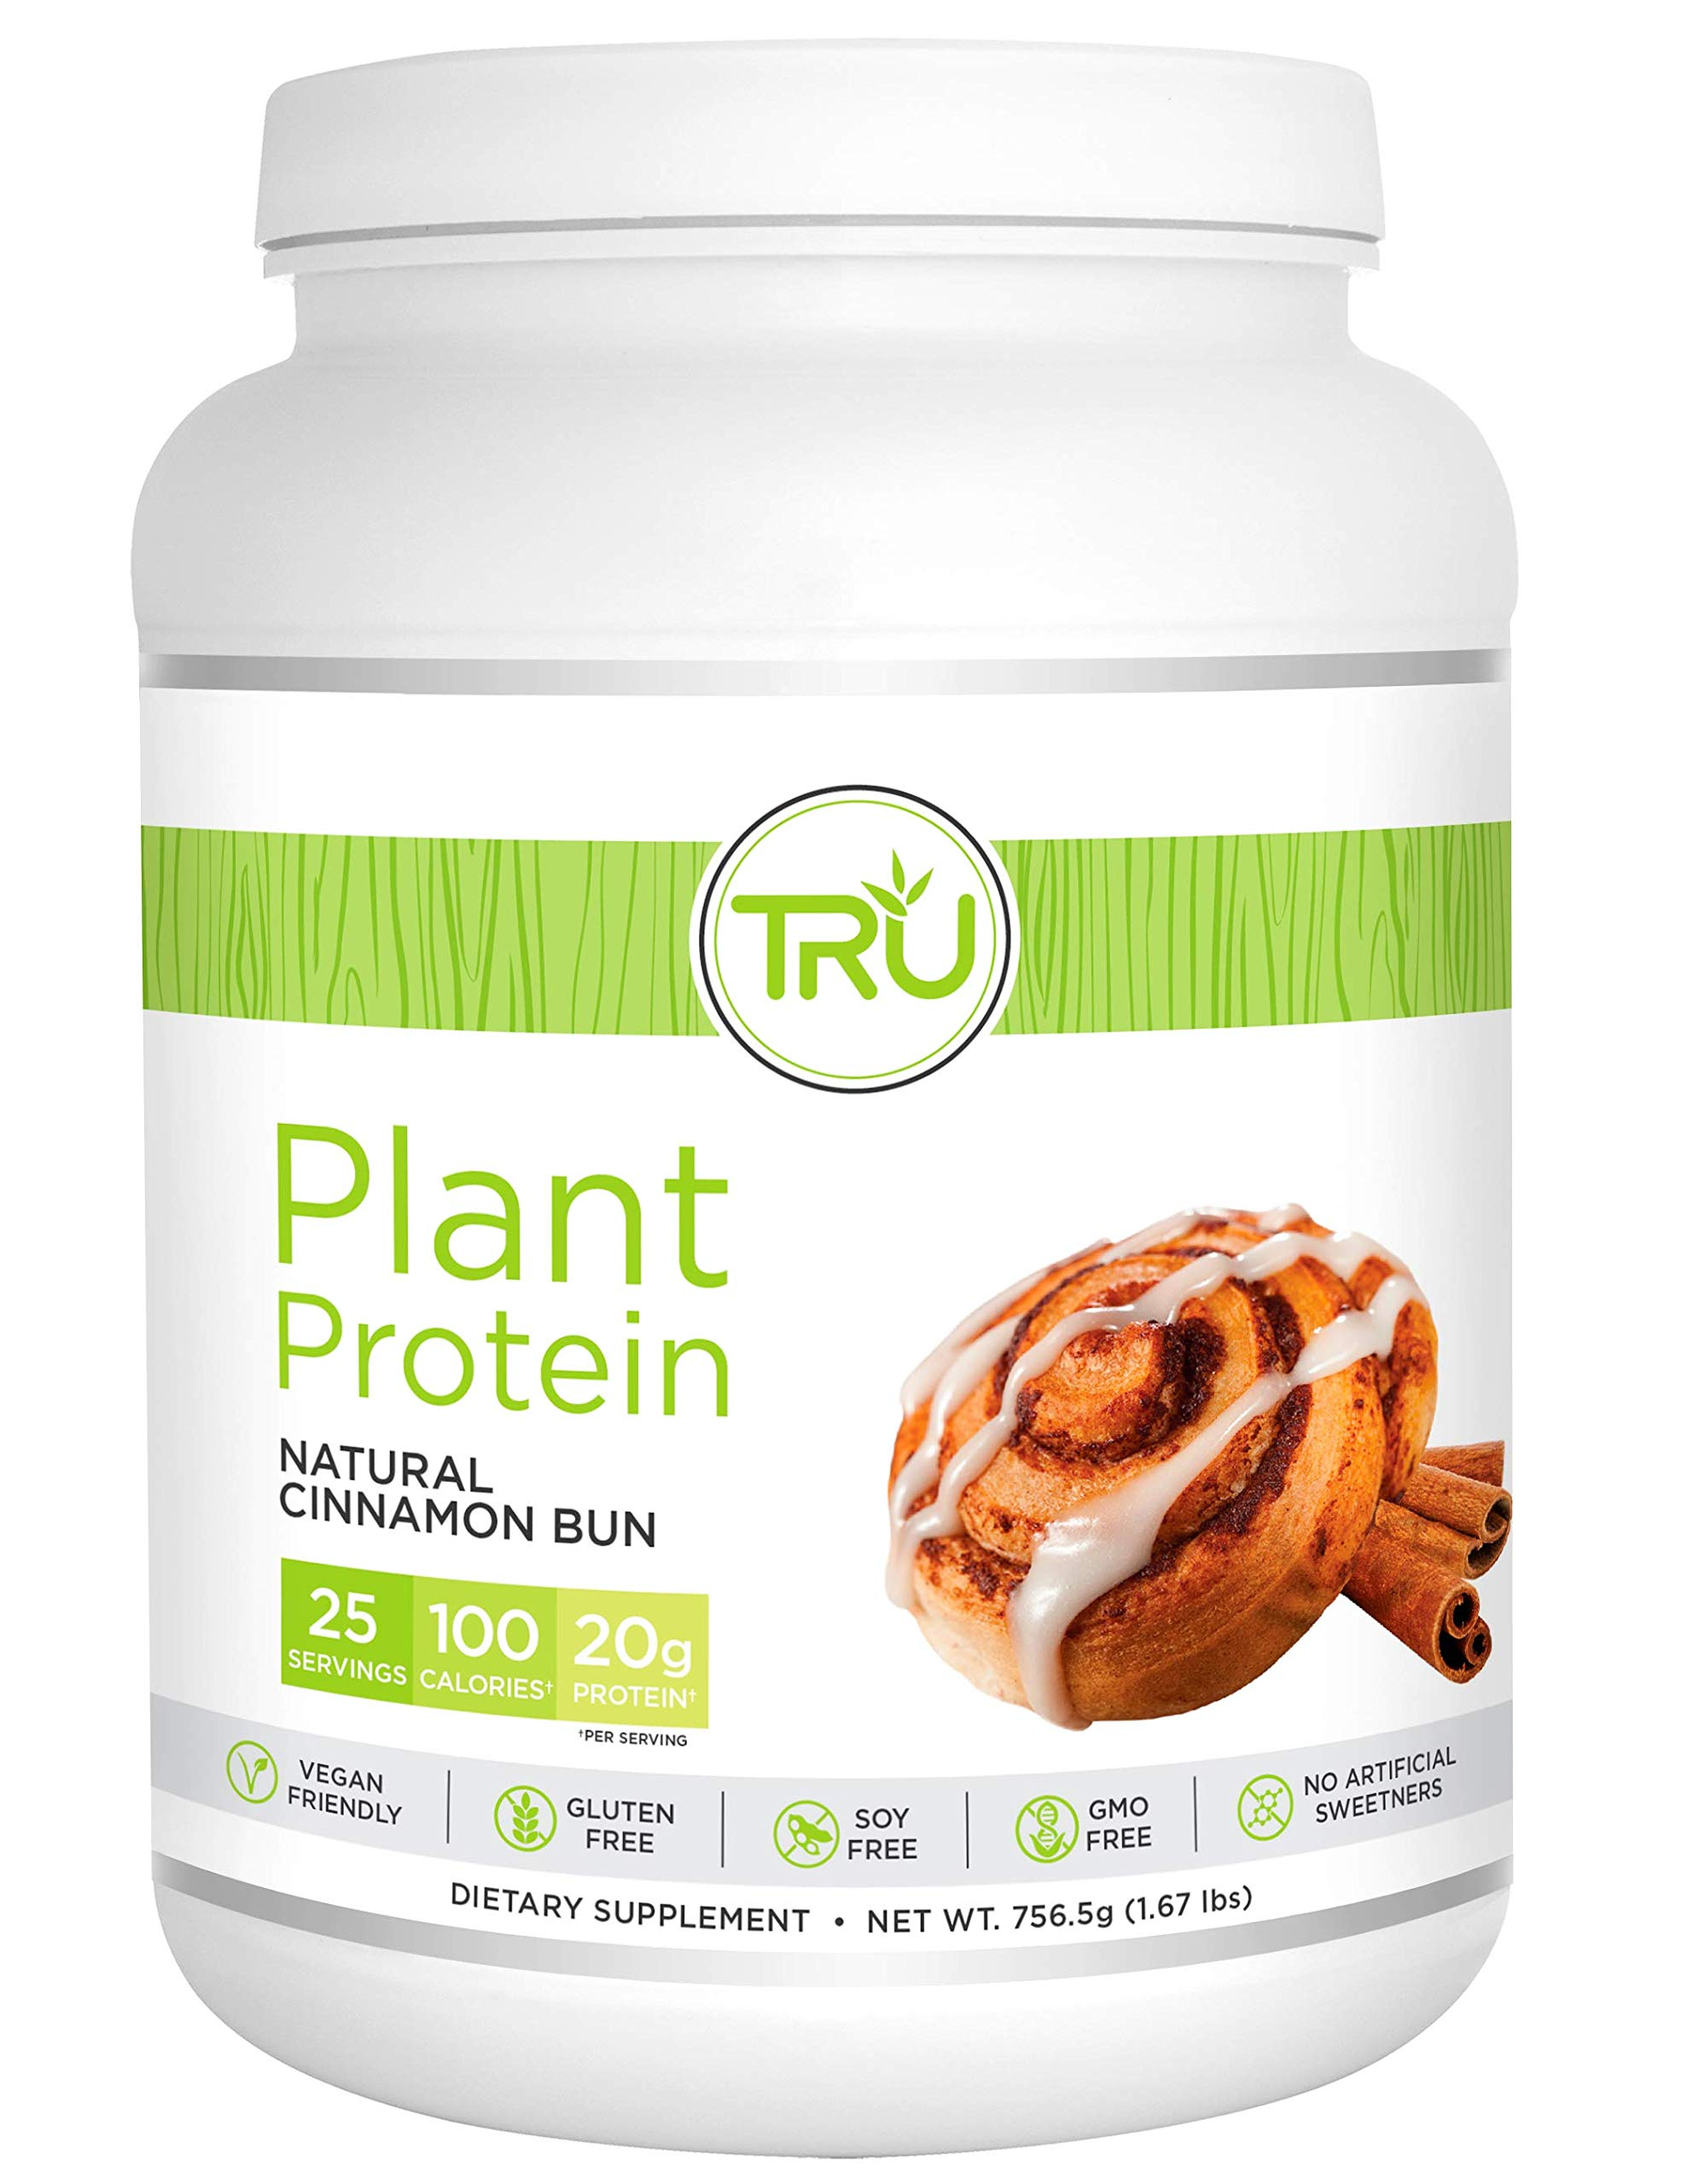 Tru Protein Cinnamon Bun - 25 Serving - Natural Plant Based Protein